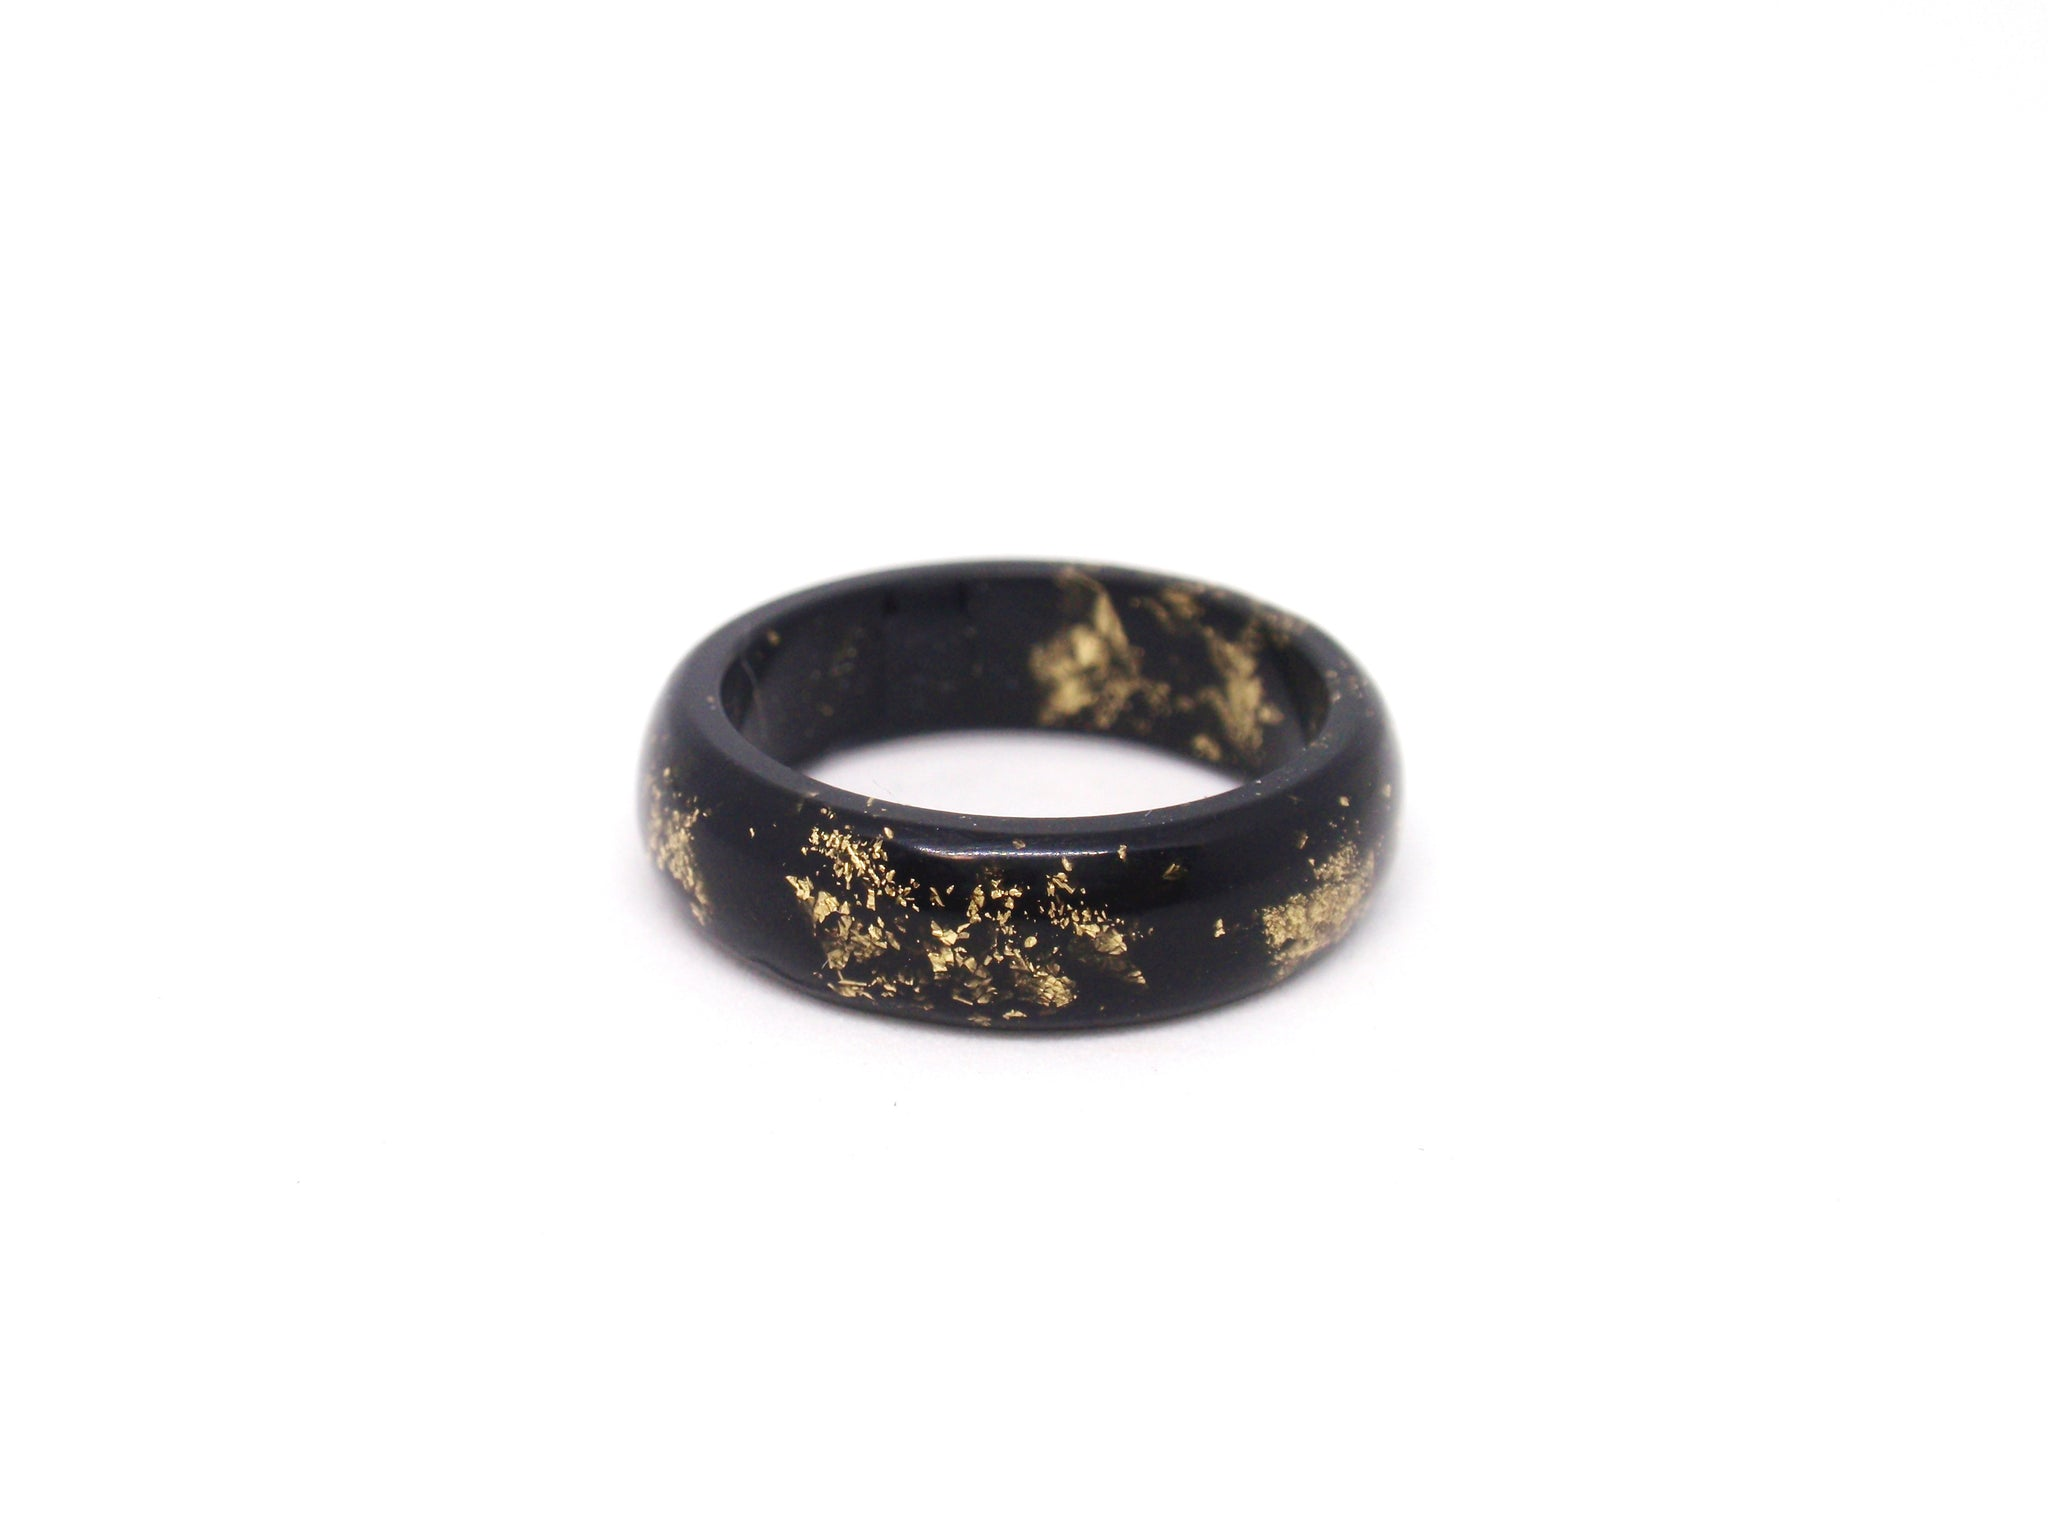 Black resin ring with gold flakes unisex band ring